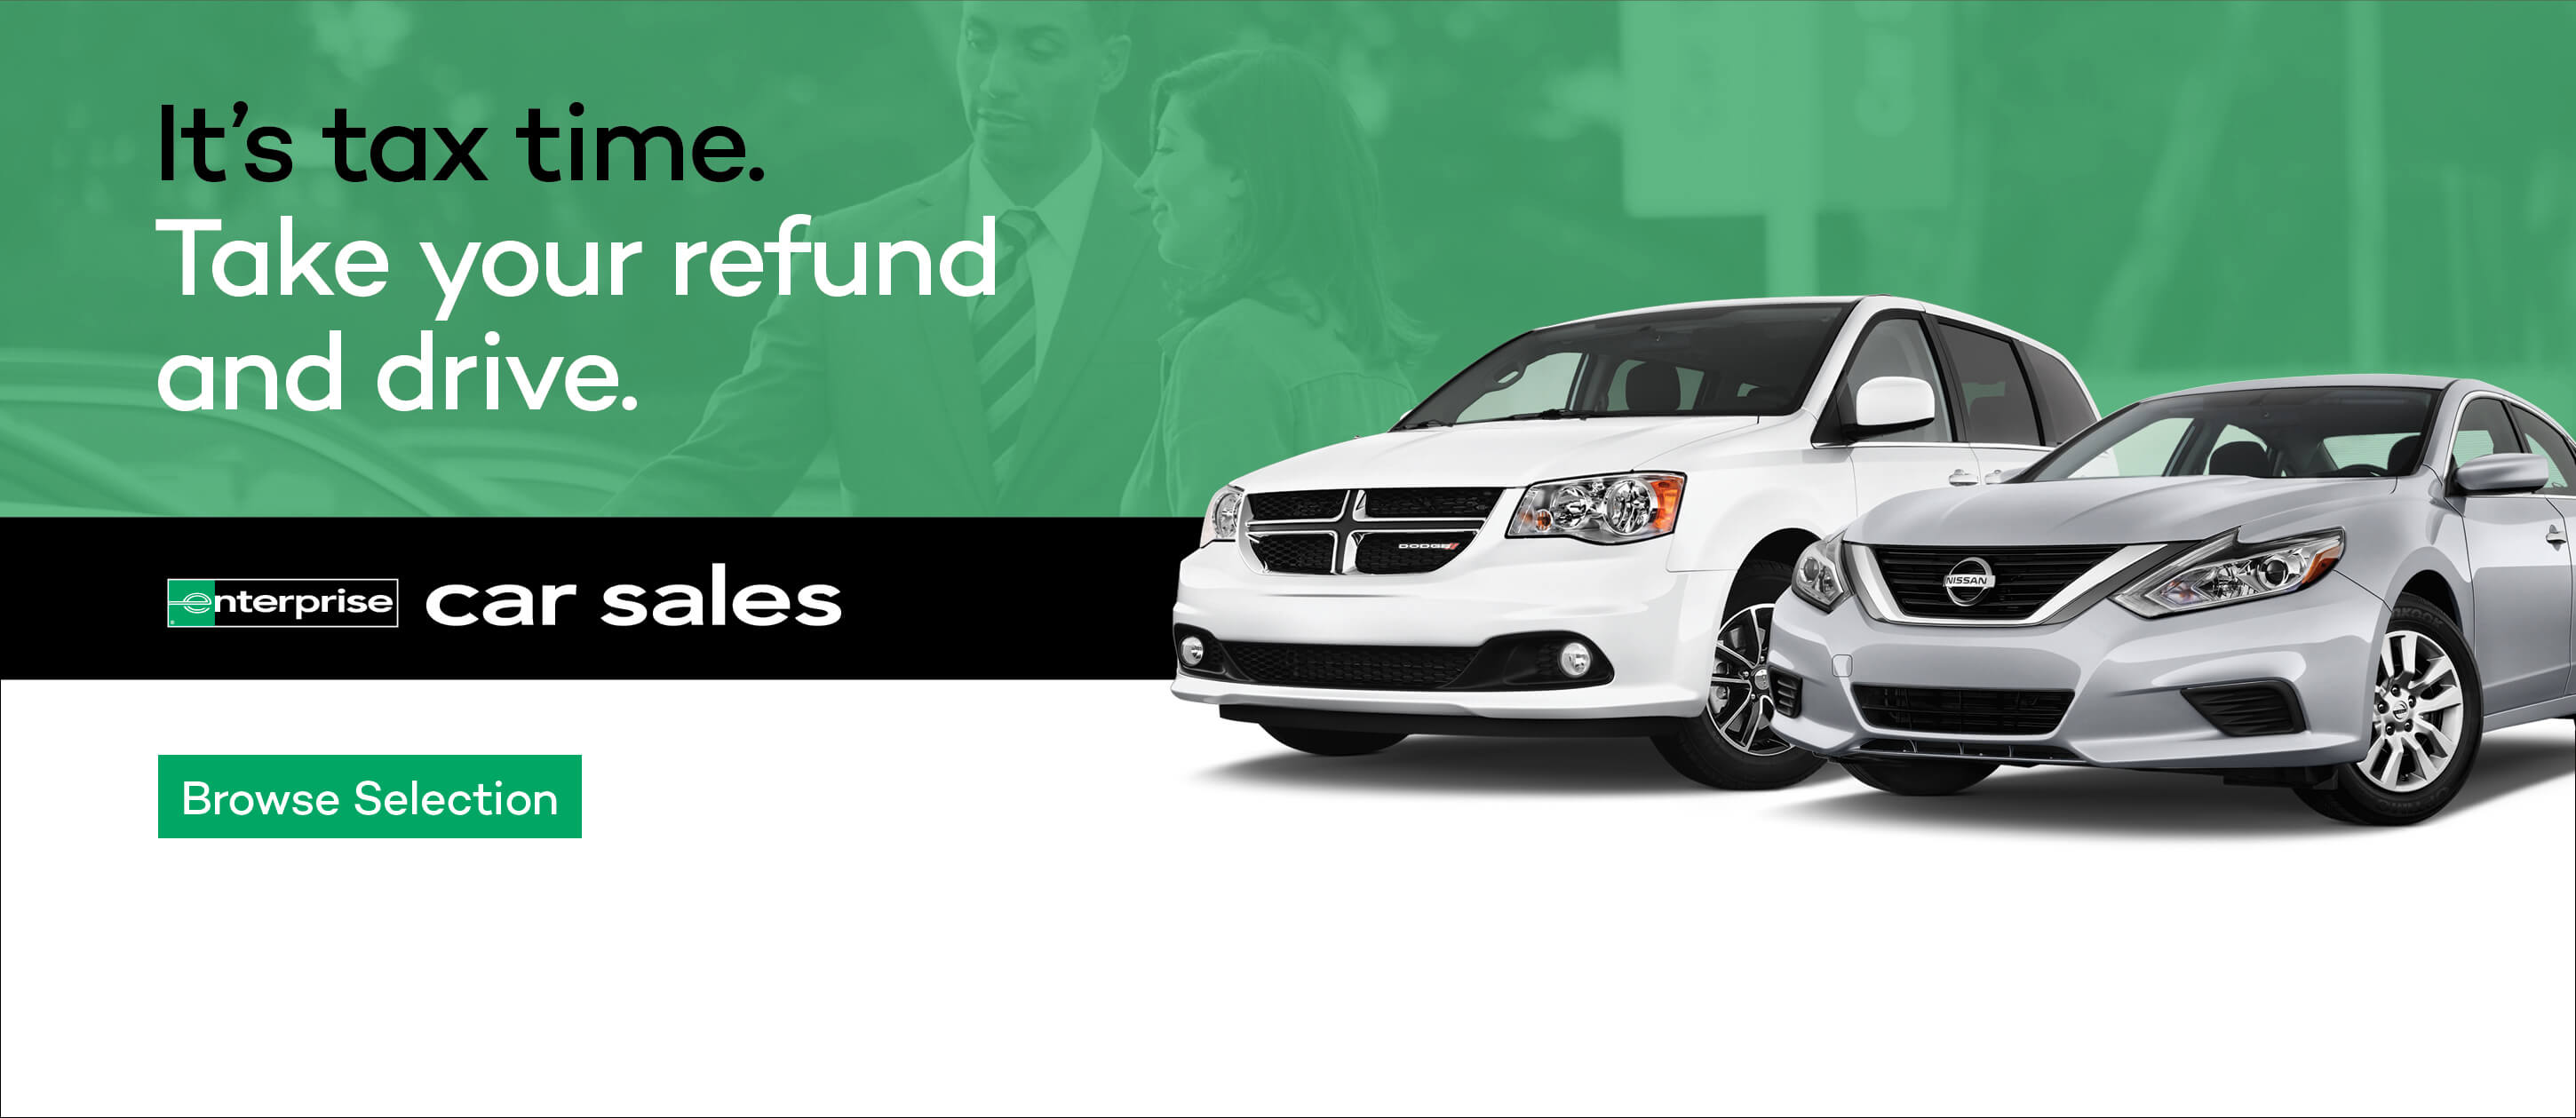 Enterprise Car Sales Tax Time Refund